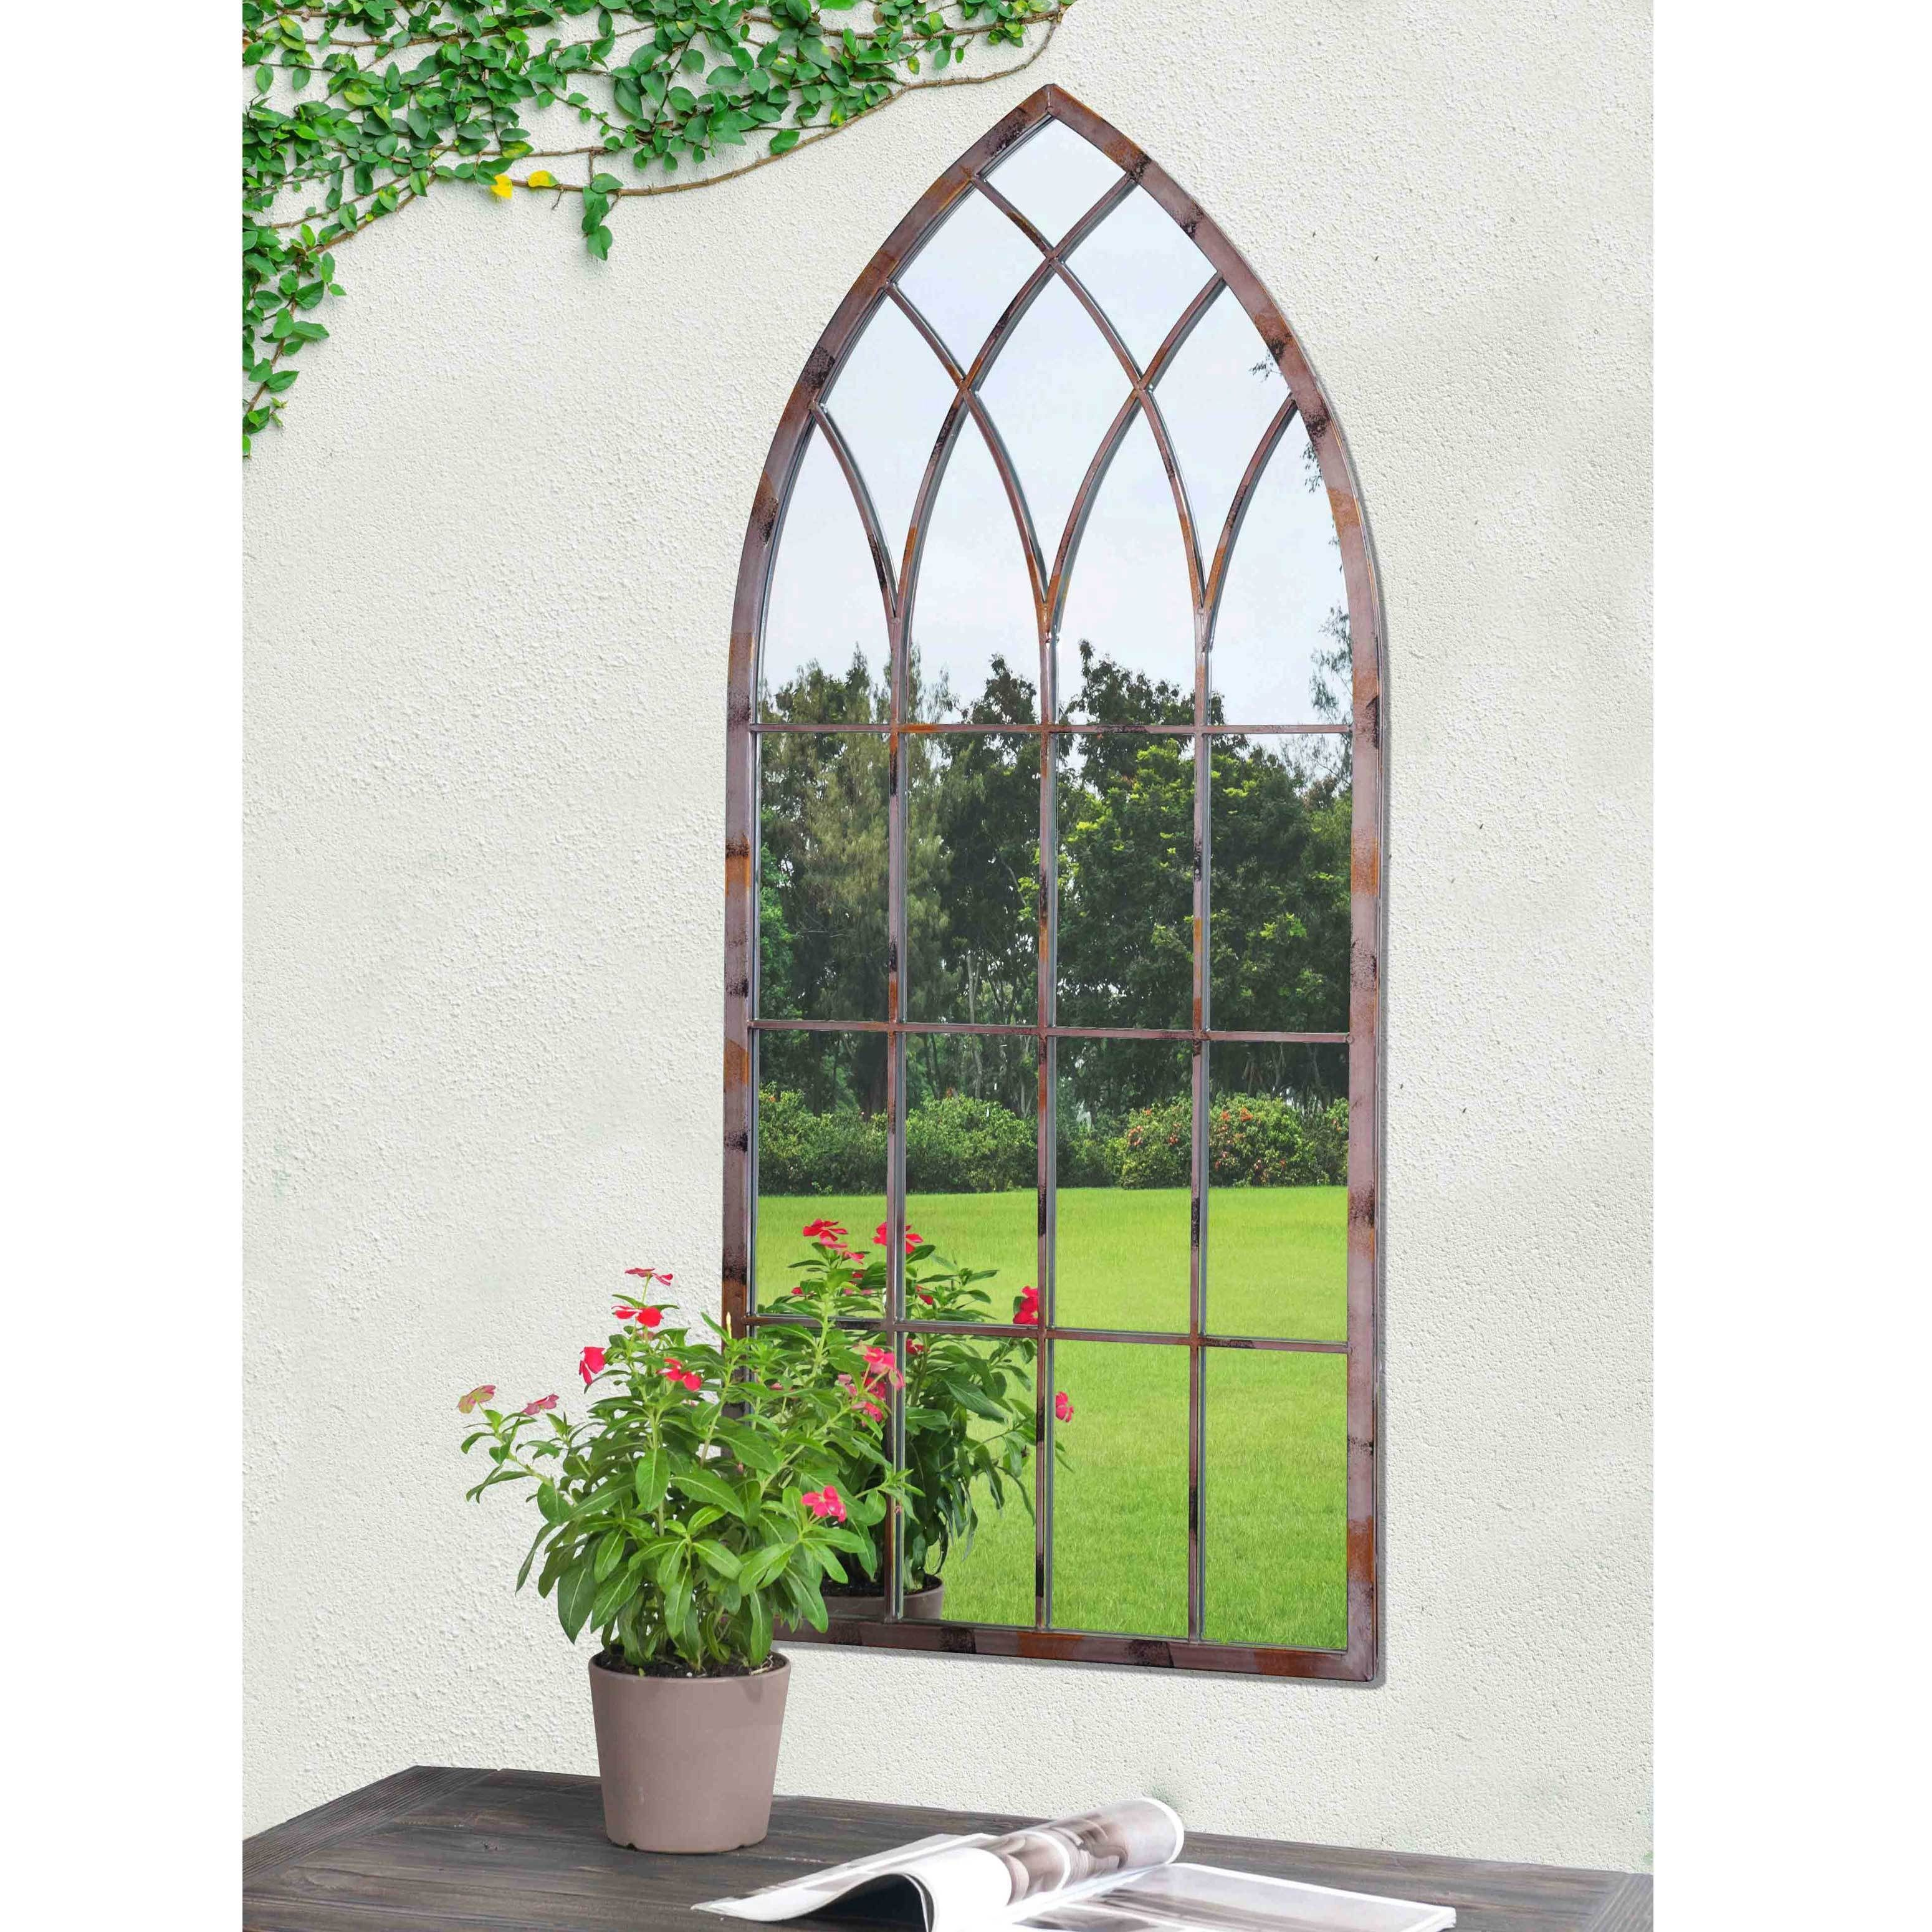 Sunjoy Cathedral Windowpane Style Garden Mirror Made of Metal with ...